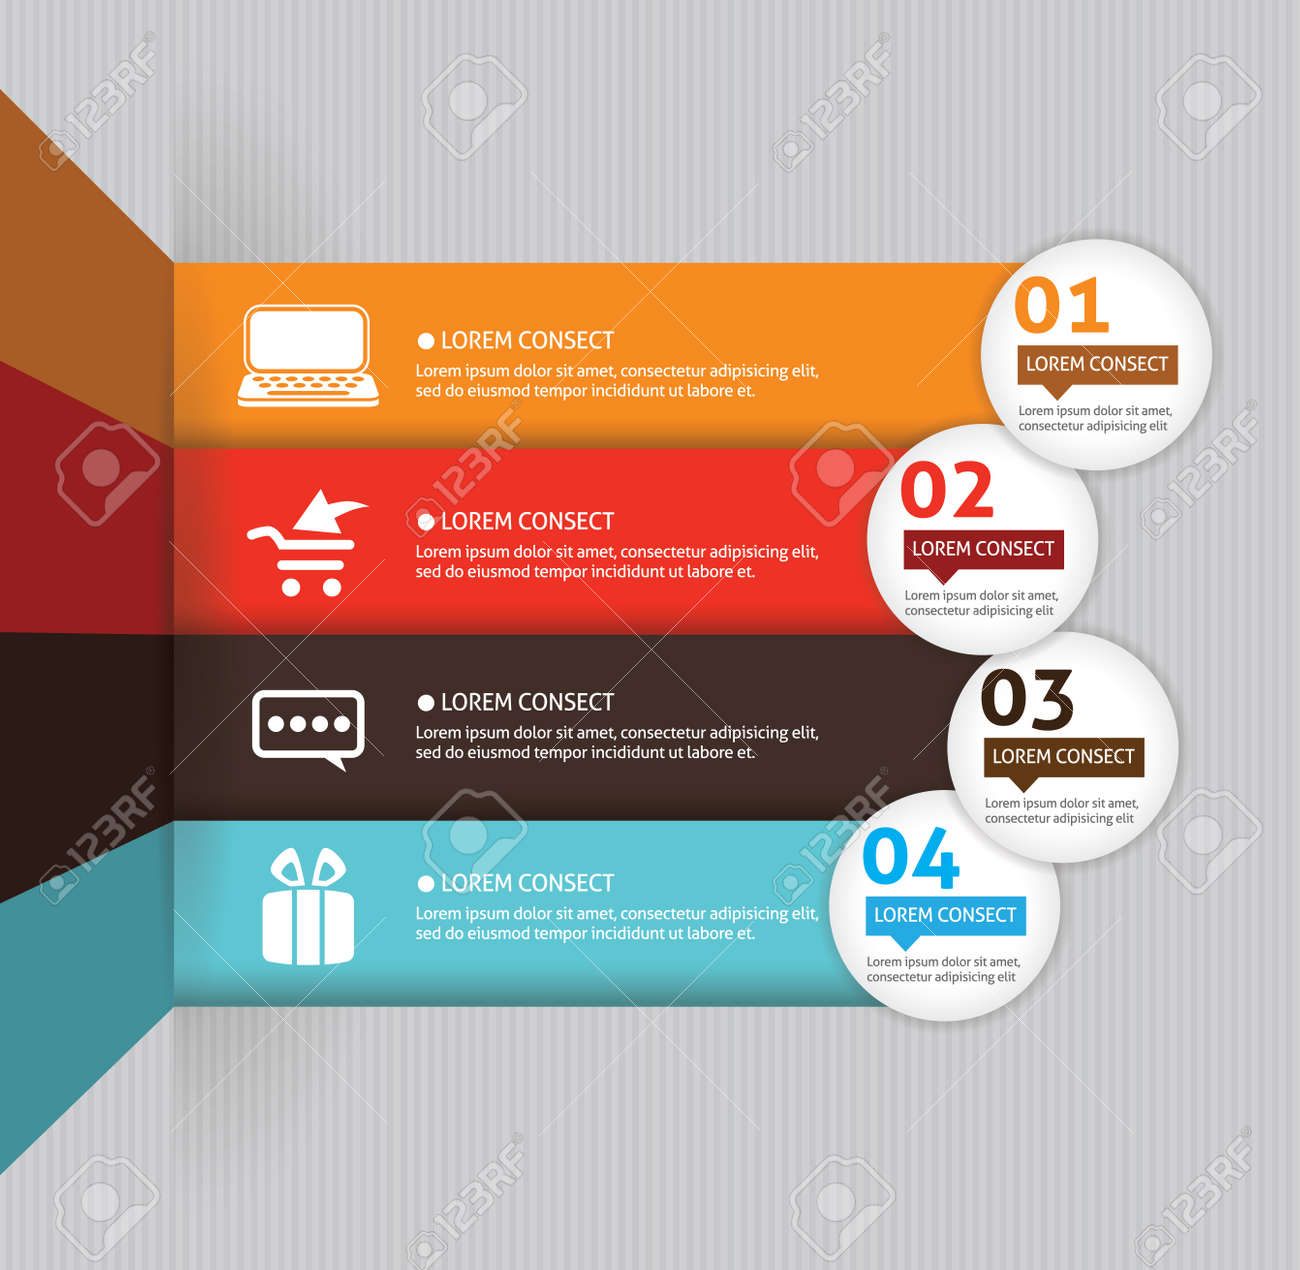 Template For Your Business Presentation With Arrows And Text – Business Presentation Template